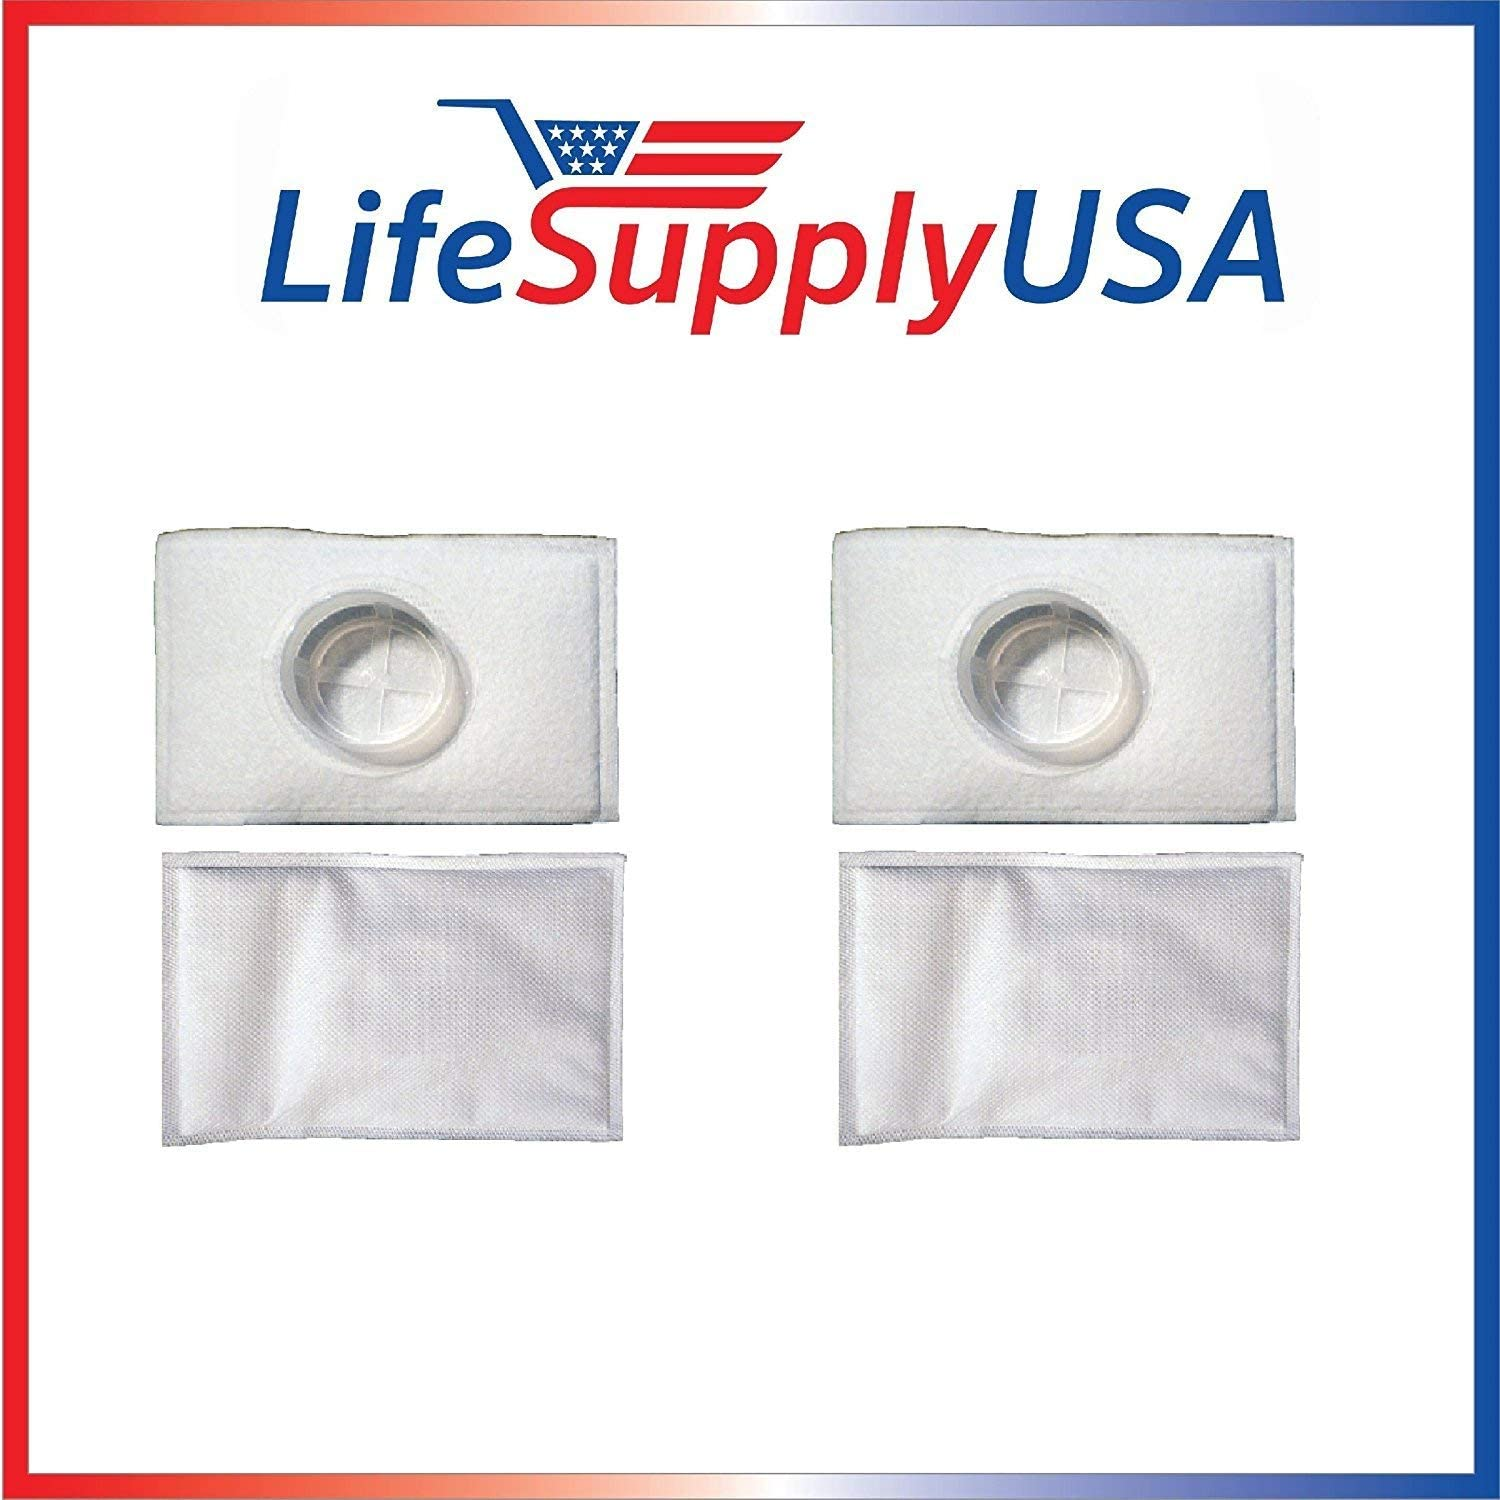 LifeSupplyUSA 4 Pack Replacement Filters Compatible with Electrolux Aerus Hi-Tech 2100 & LE Model Tank Type Canister Vacuums, Part # 26-2311-09